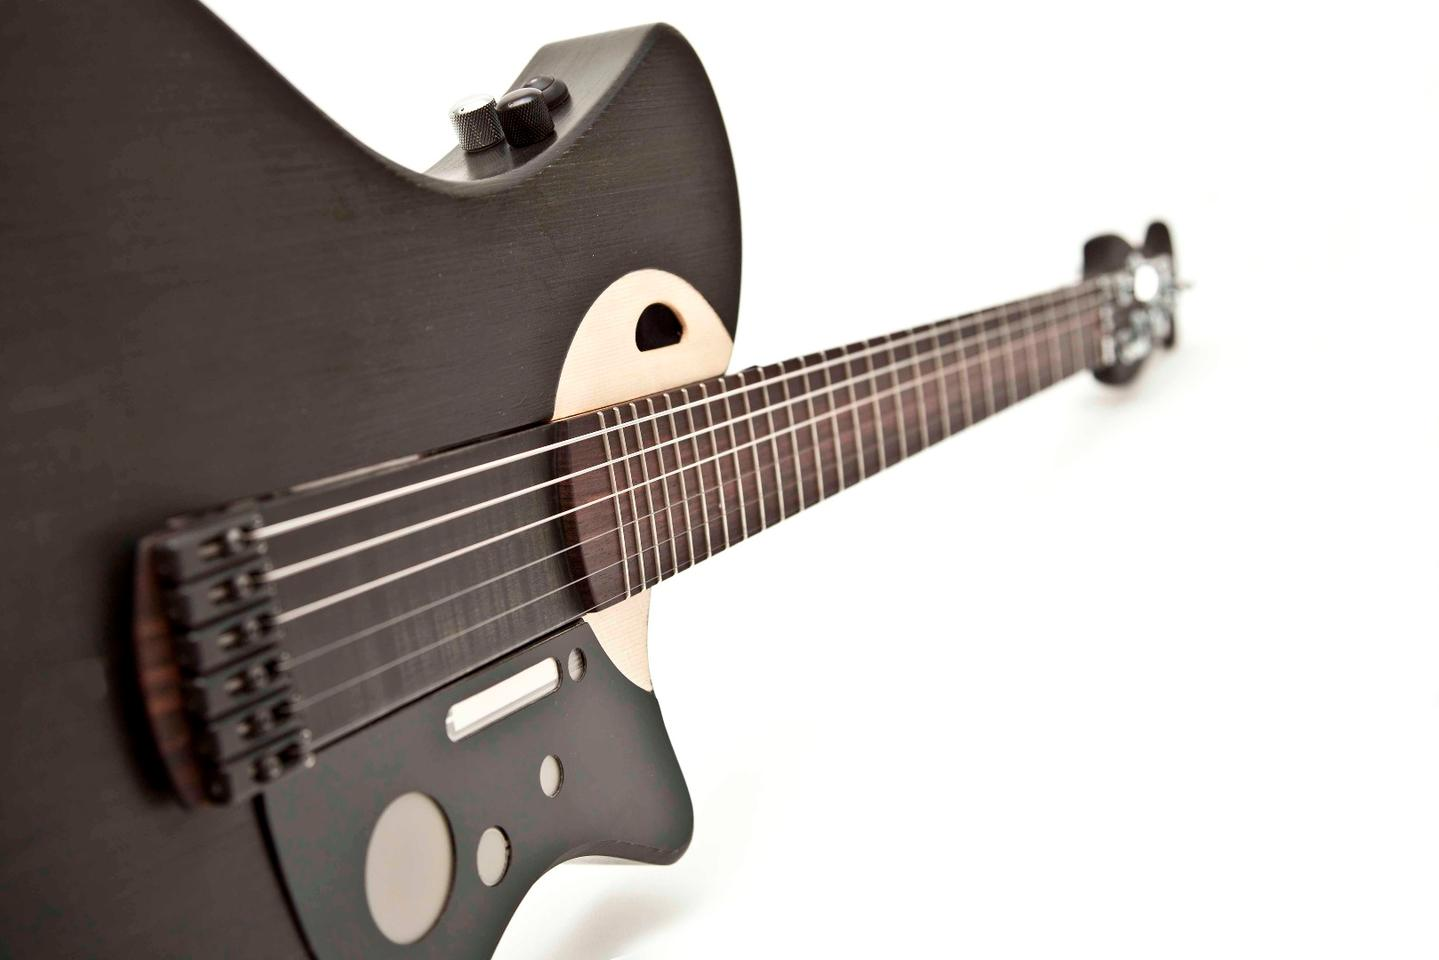 All sound is output from the wooden body of the guitar thanks to Mind's patented technologies